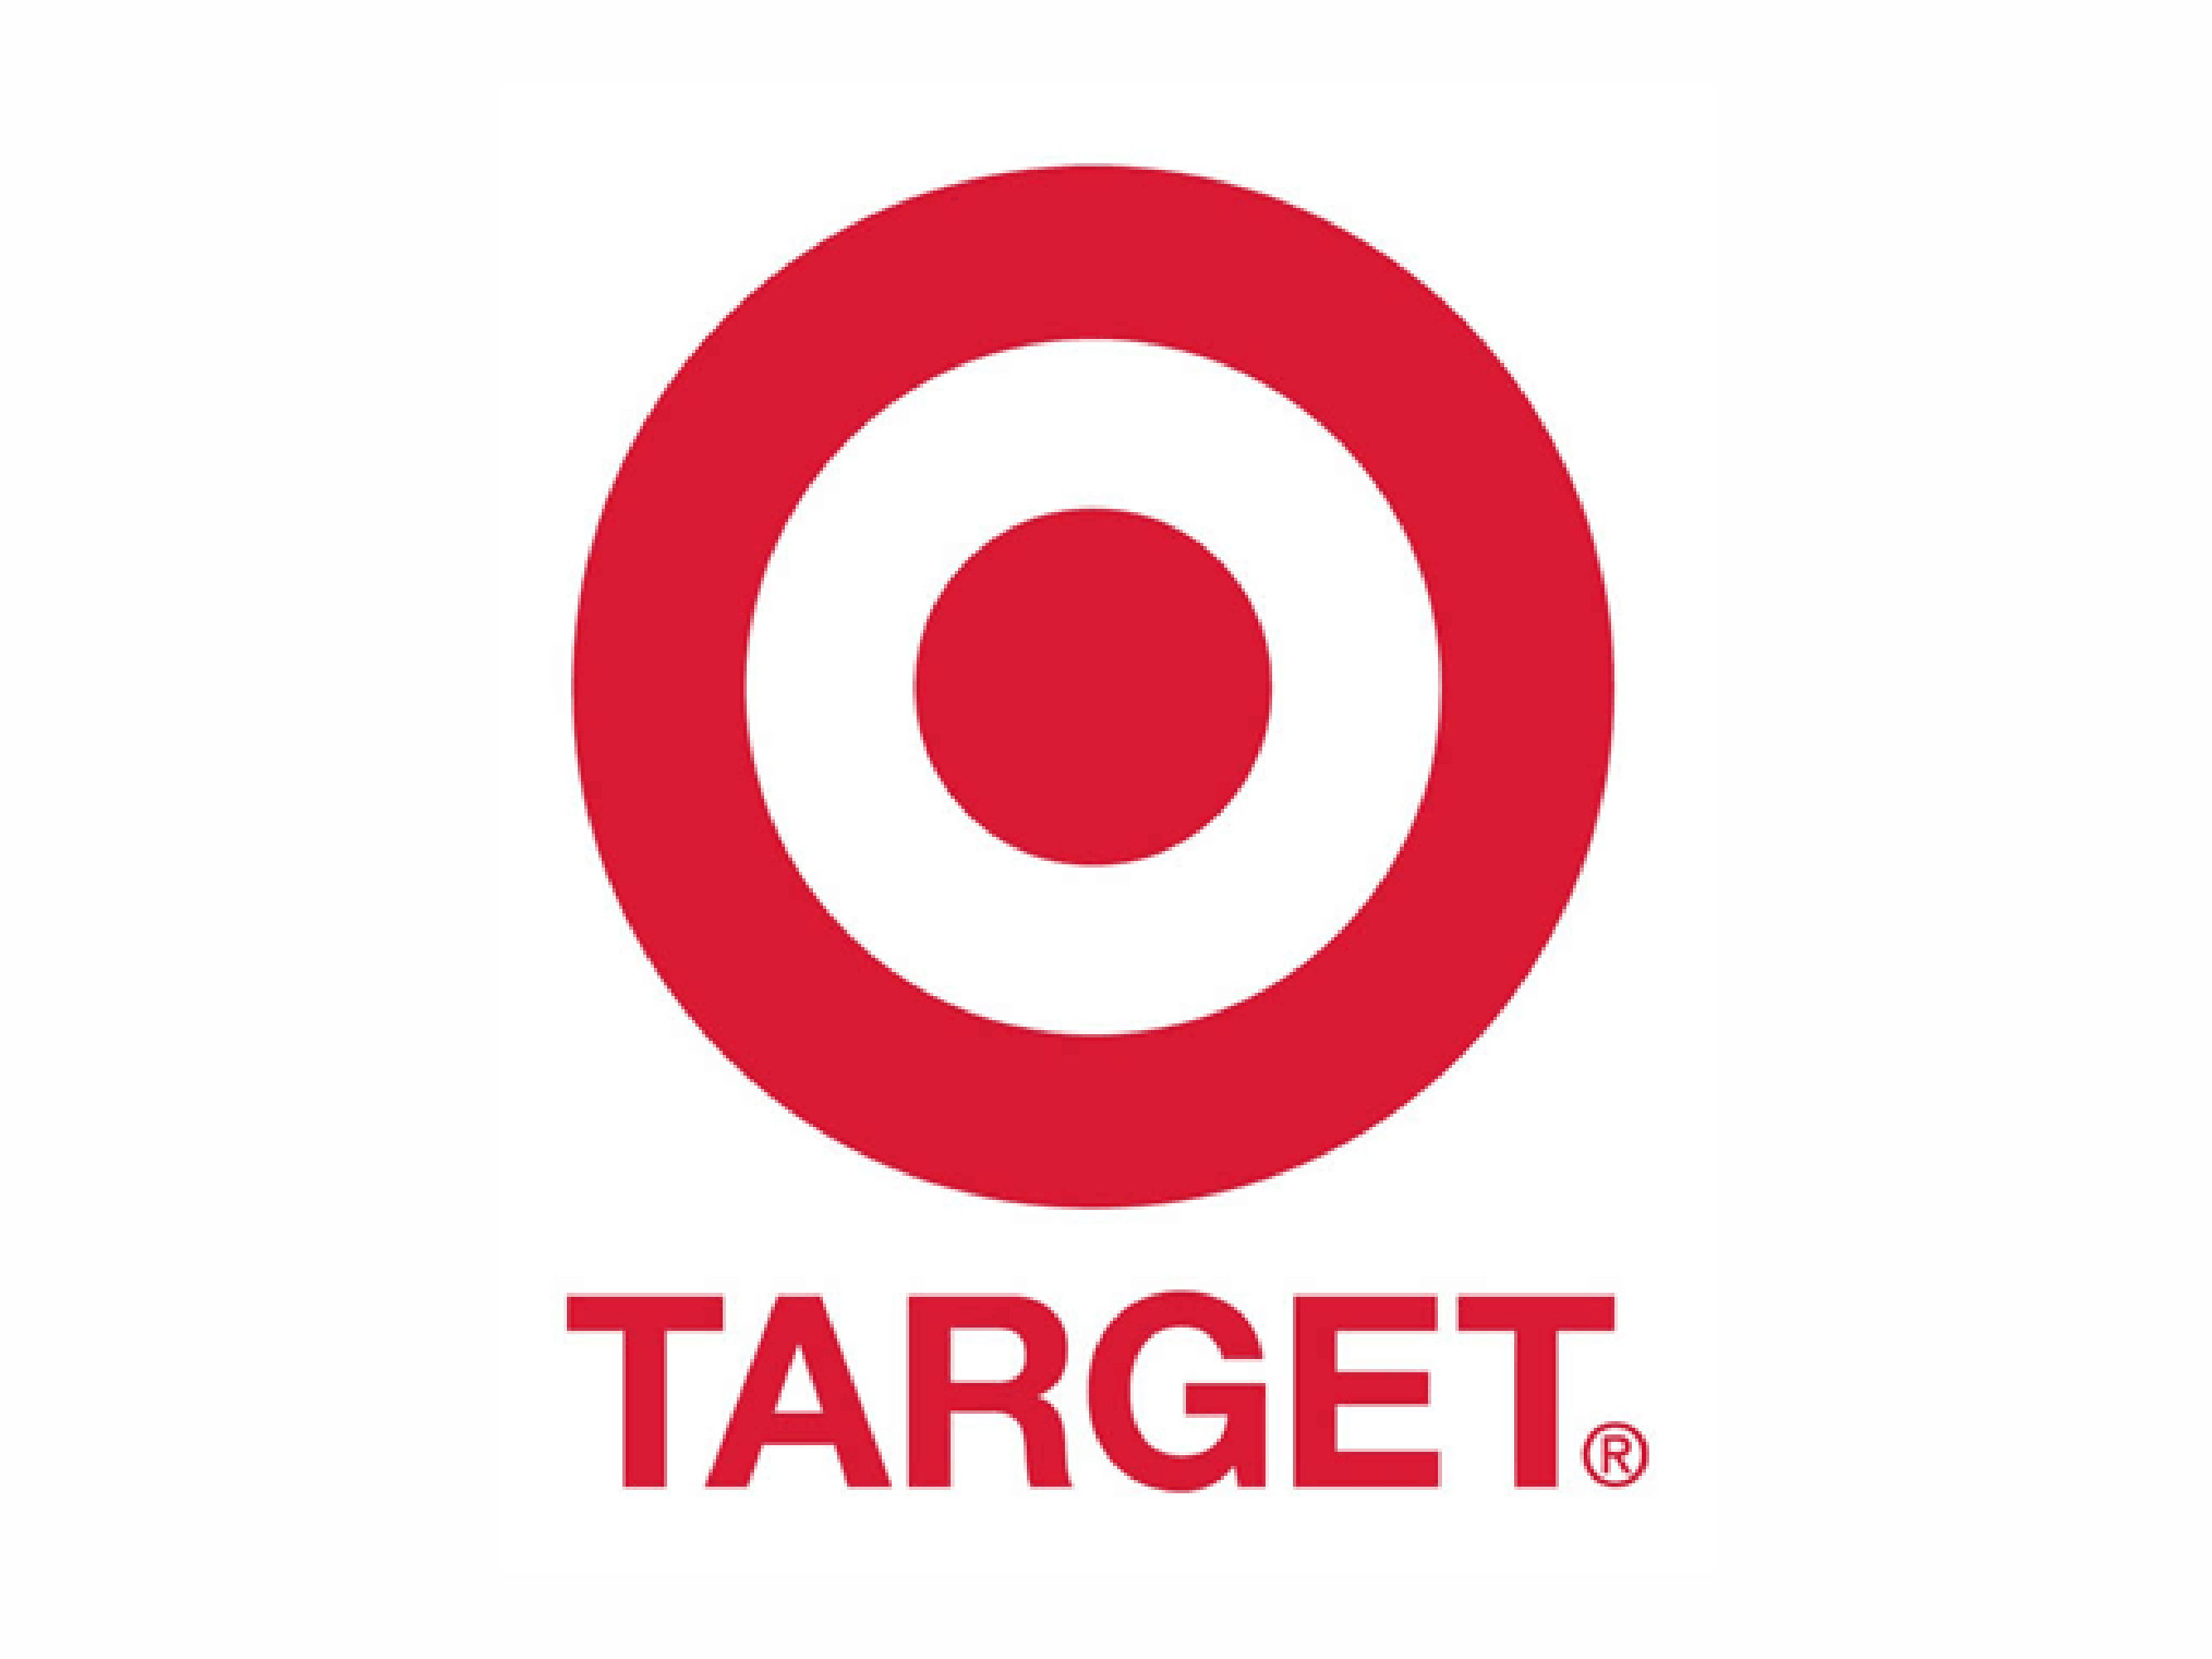 Target distribution center jobs - Distribution Center Jobs